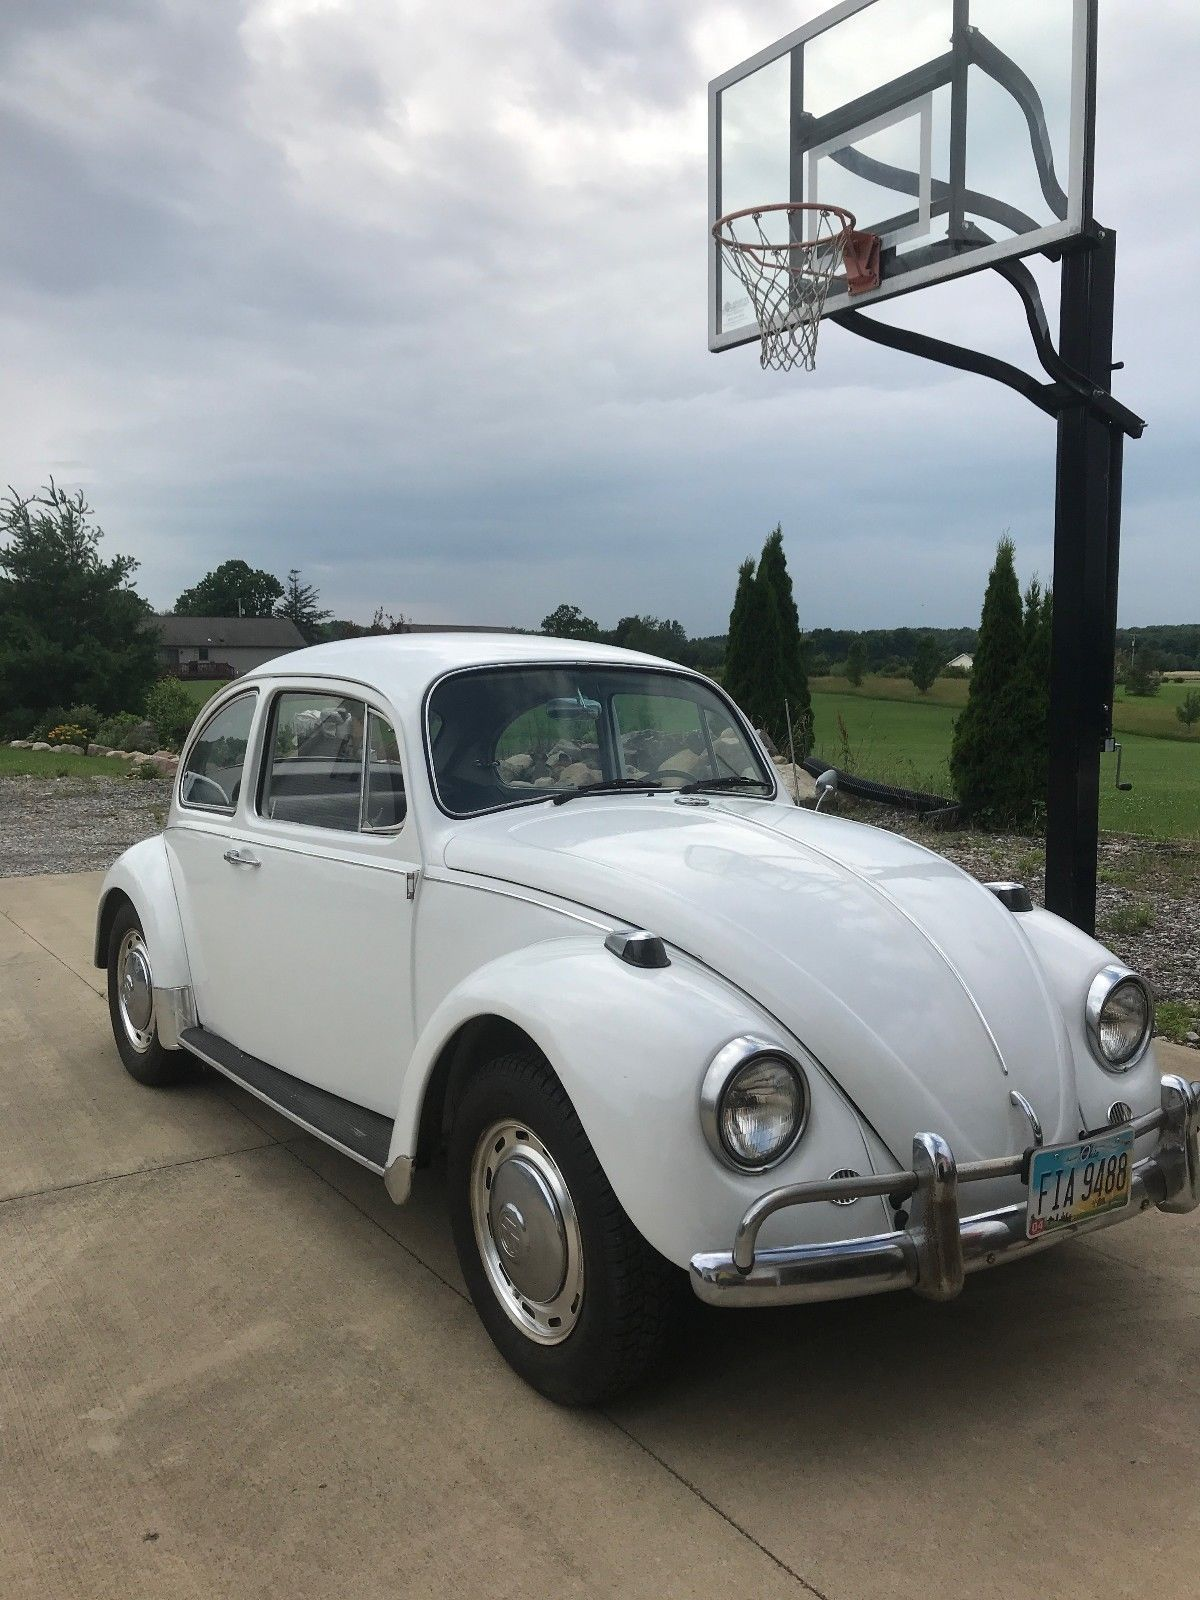 Ebay 1967 Volkswagen Beetle Classic 1967 White Beetle With Many Original Parts Classiccars Cars Volkswagen Beetle Classic Cars Beetle